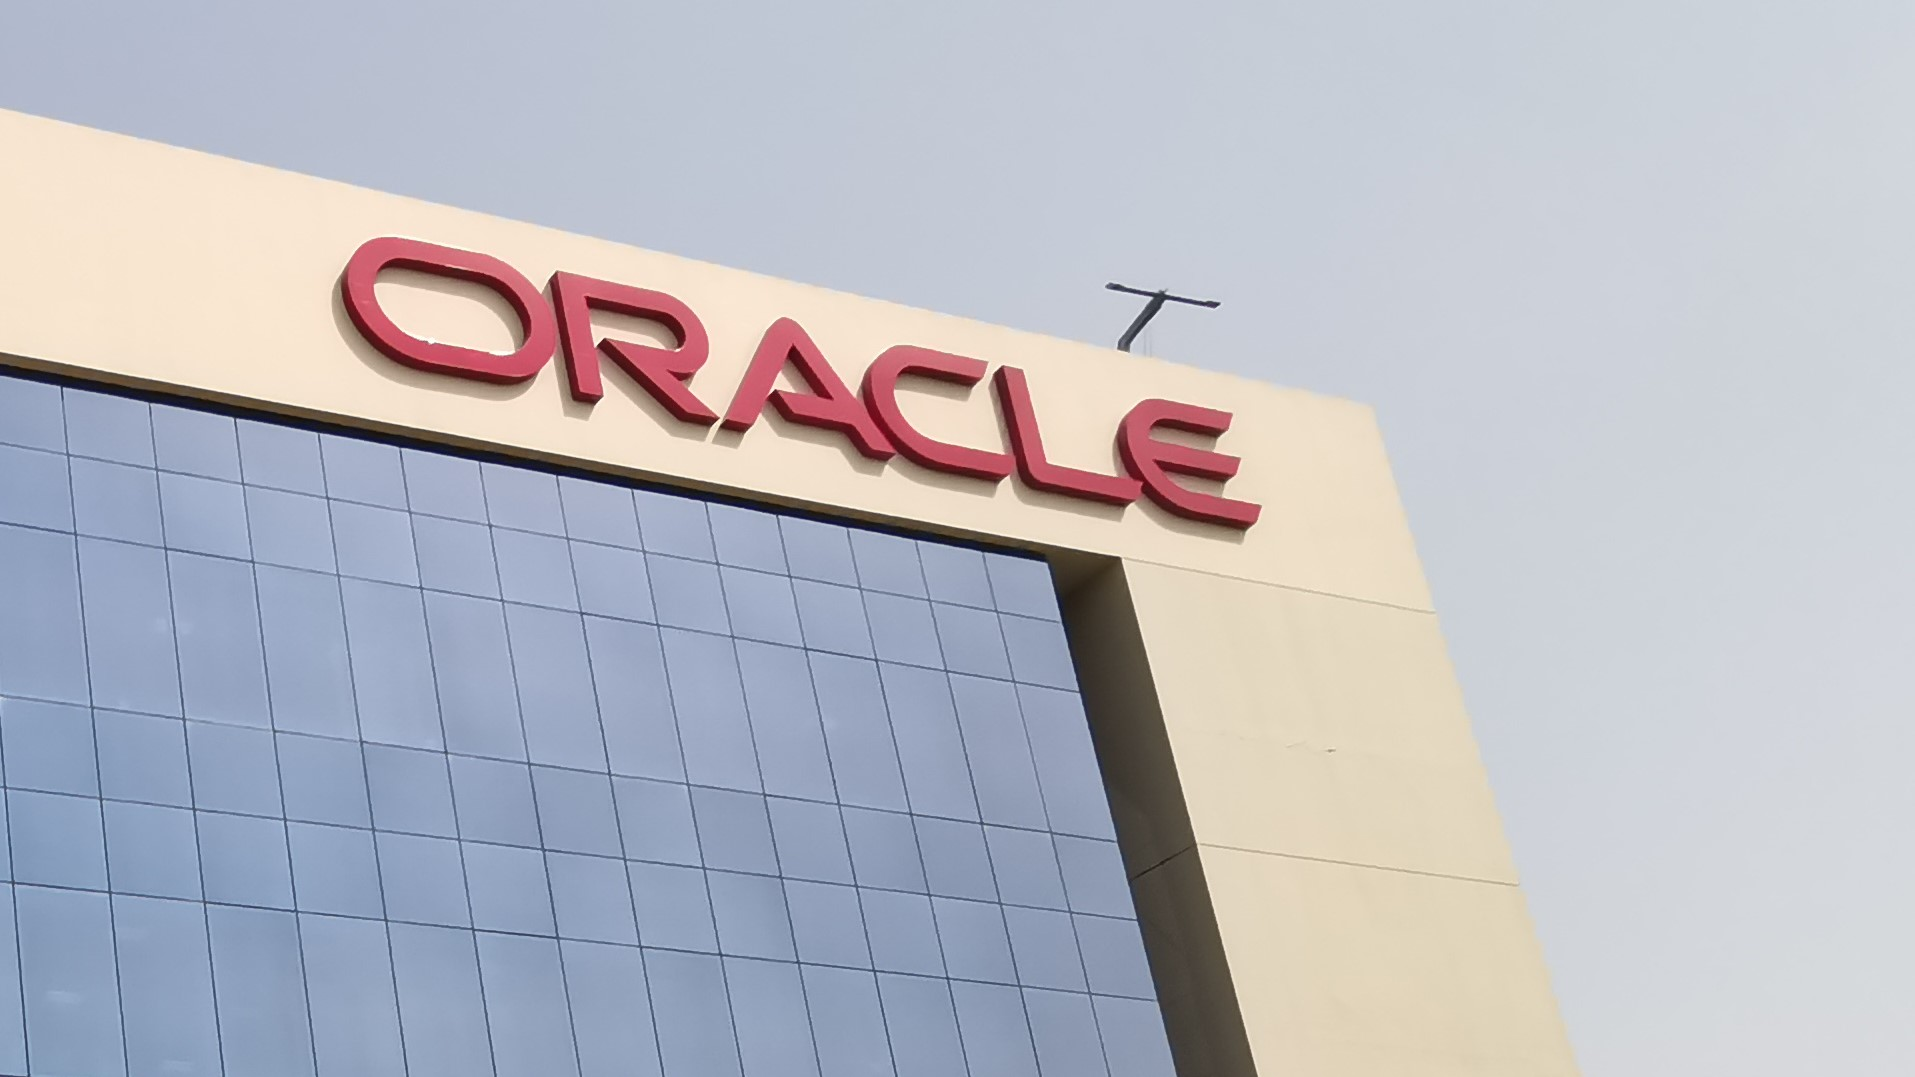 Oracle aims to drive technology-driven transformation in cloud computing space